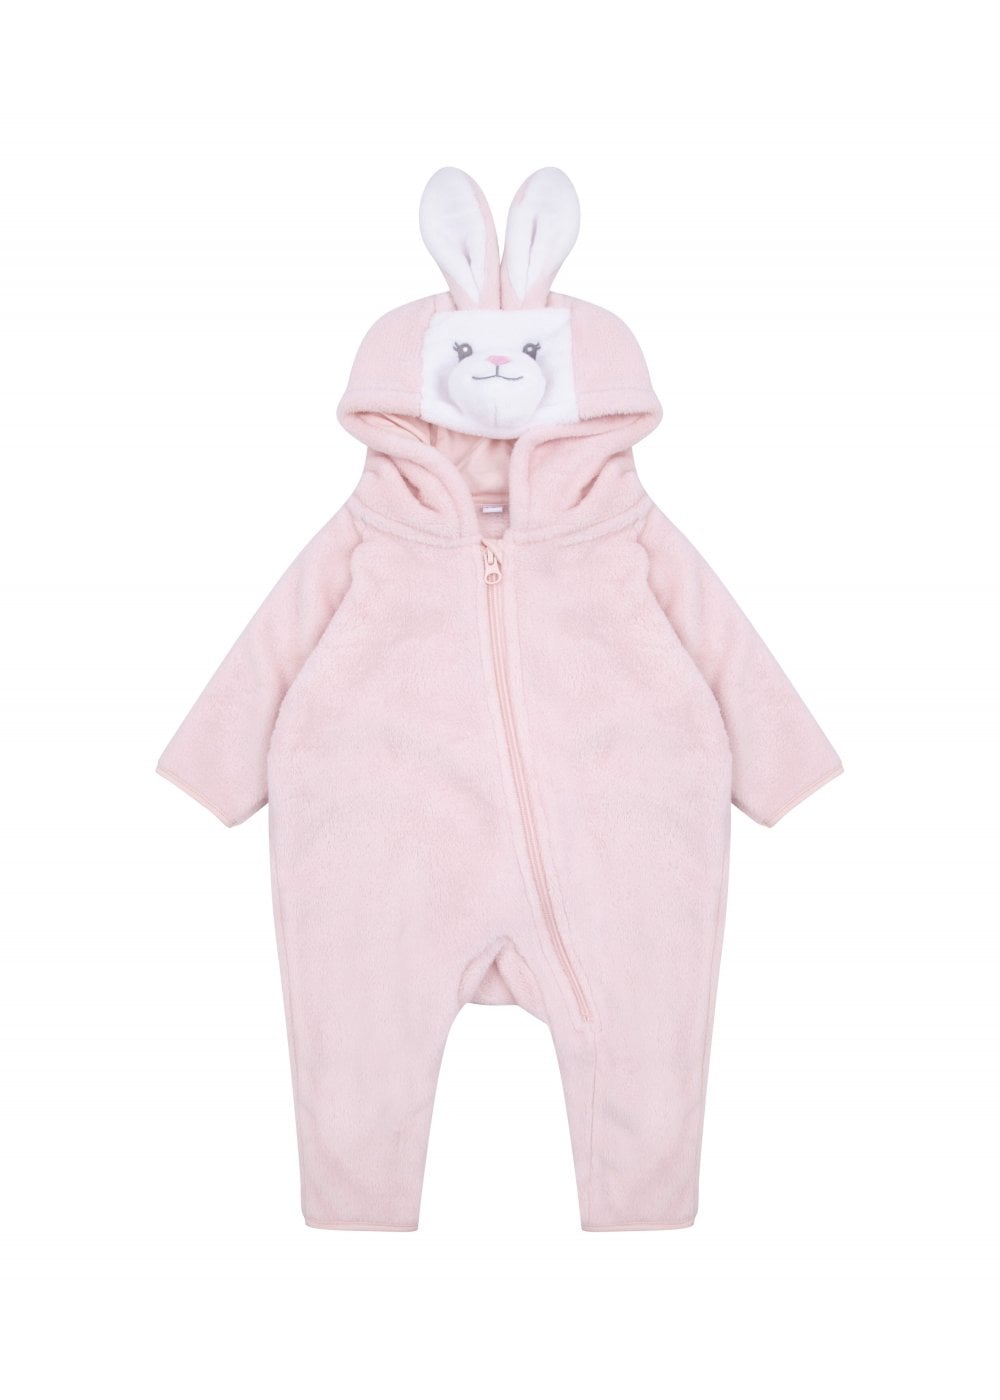 Larkwood BabyToddler Rabbit All In One